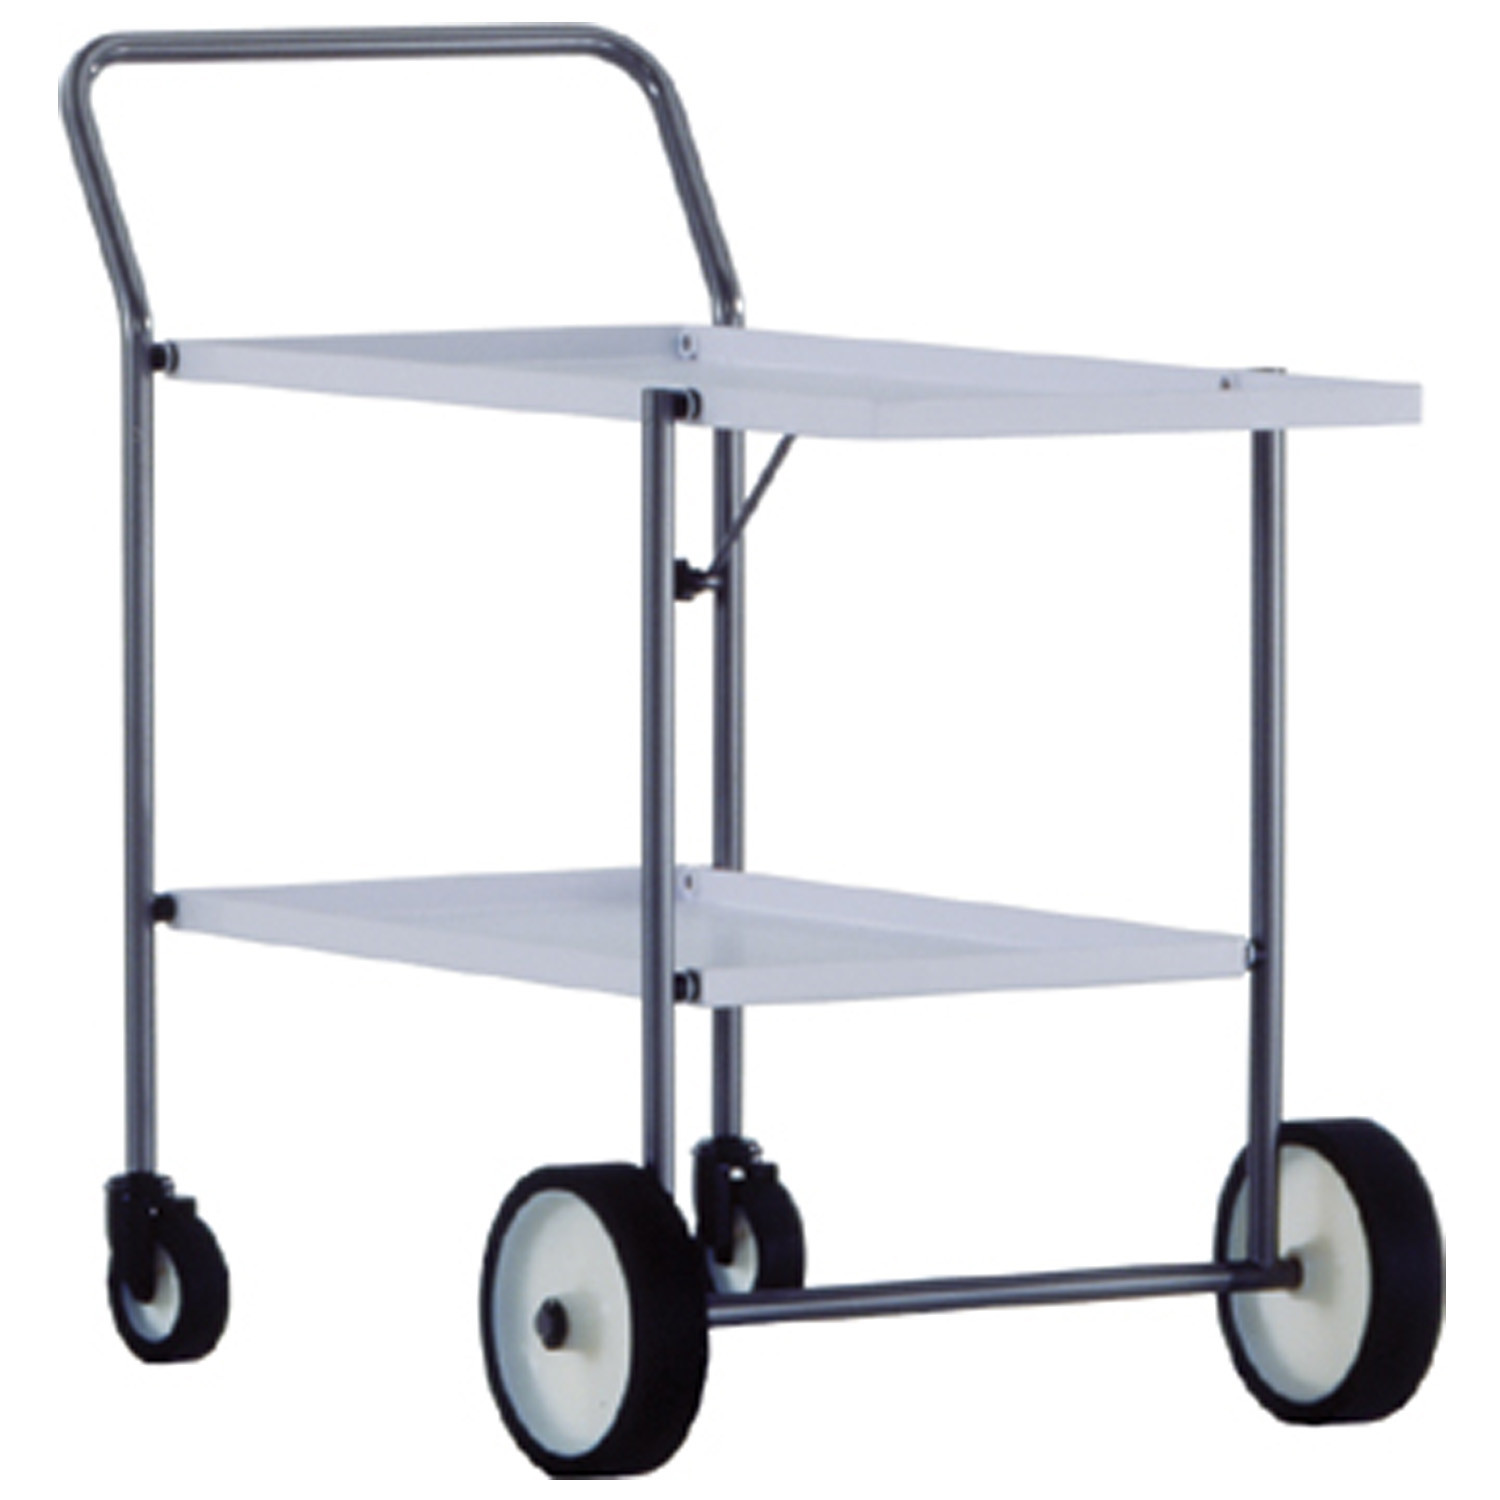 Green Outdoor High-End Serving Trolley